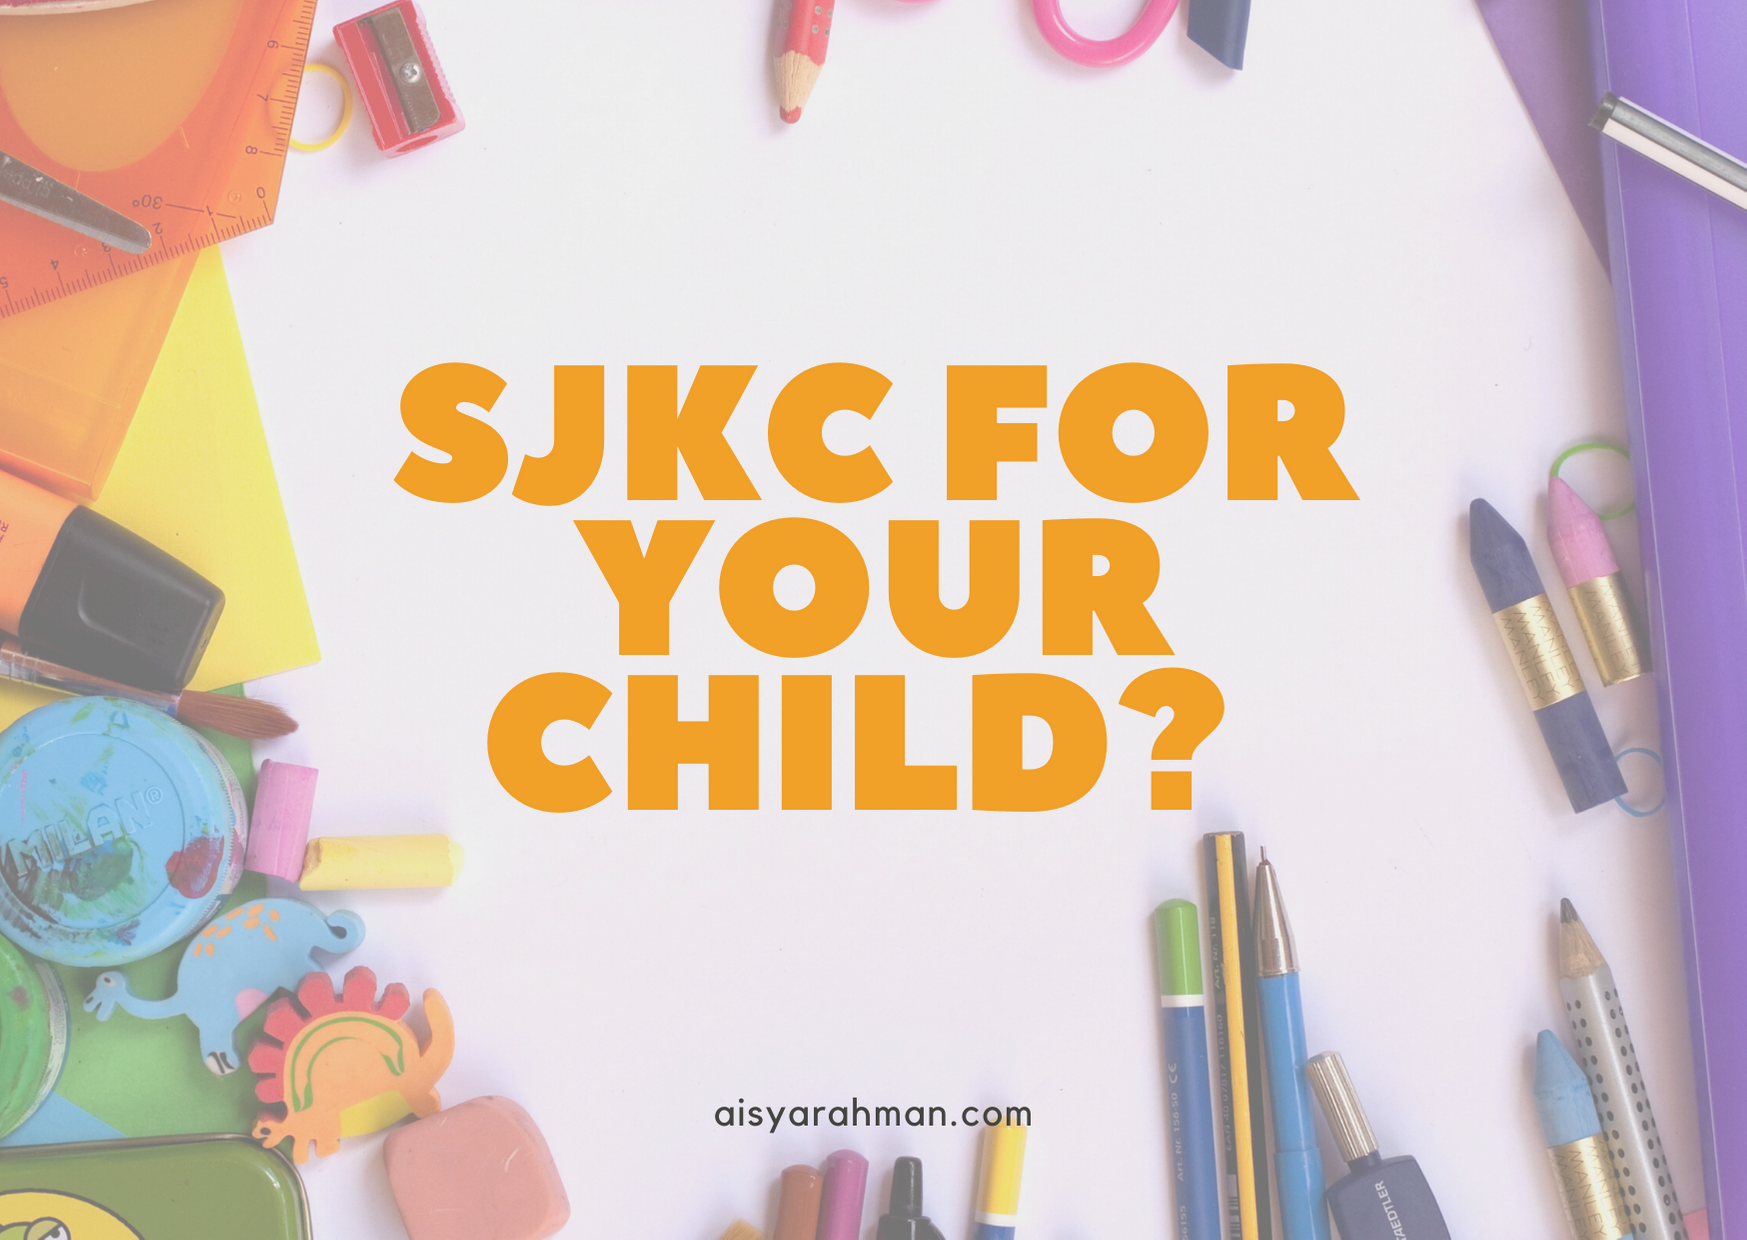 Thinking about sending your children to SJKC for primary?